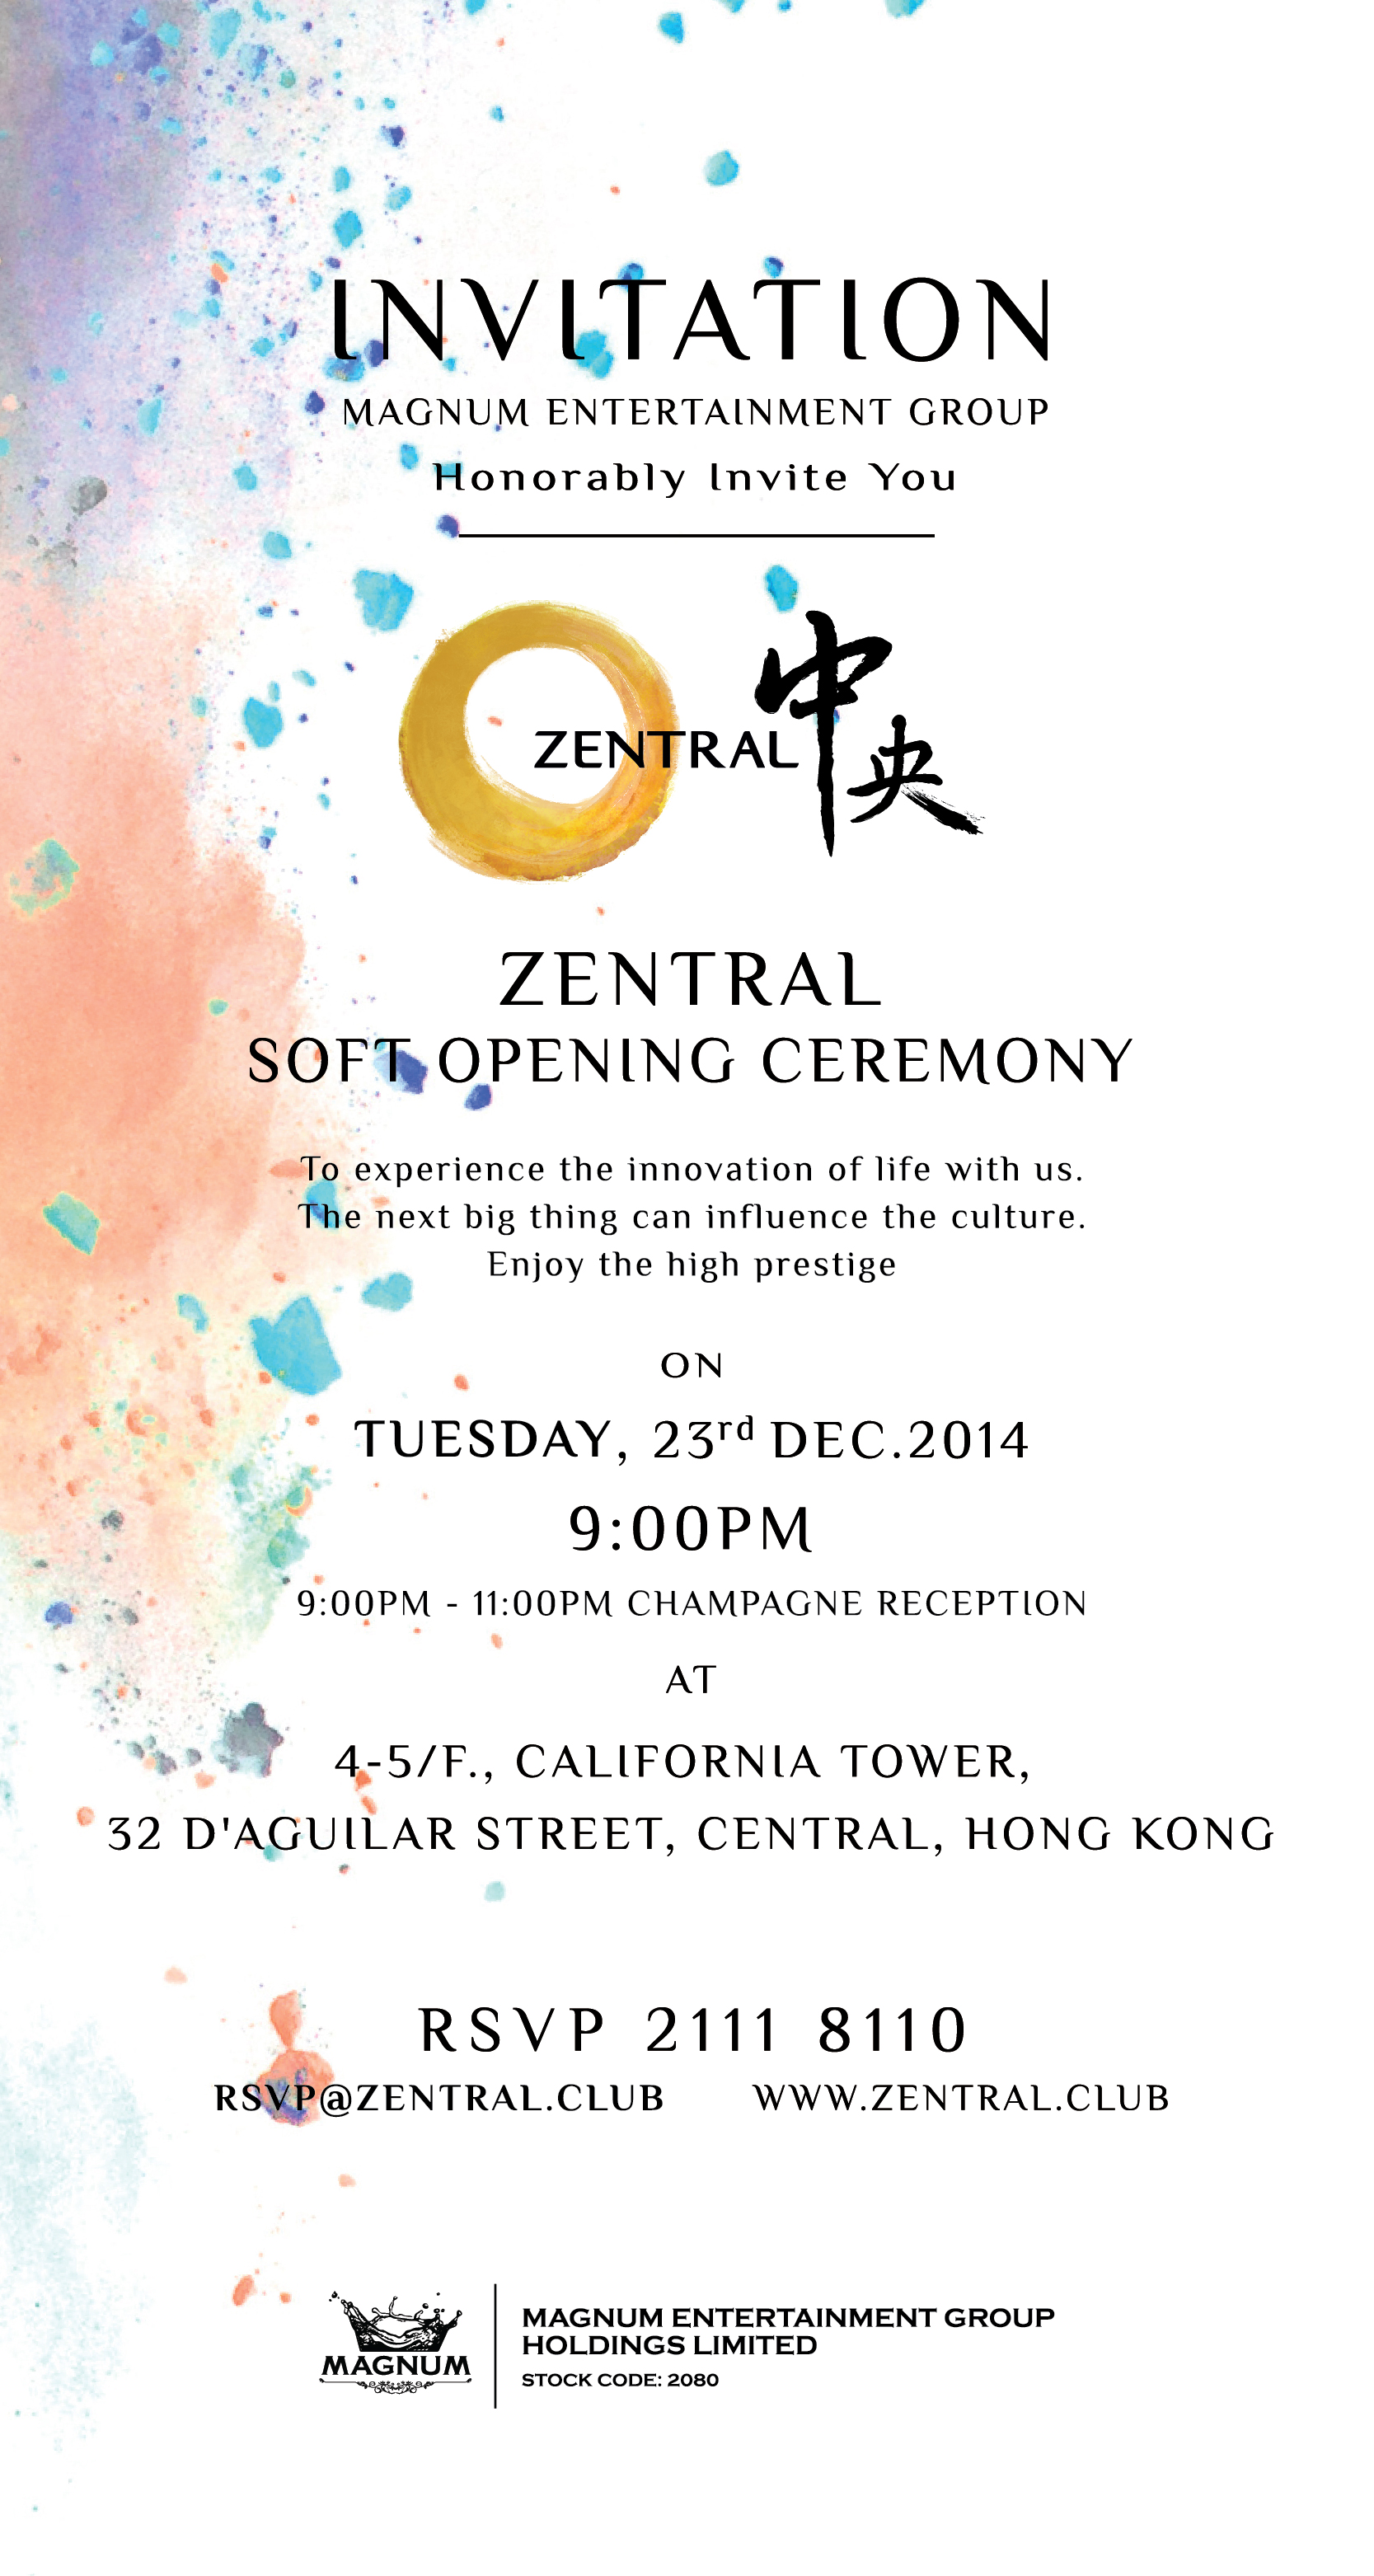 ZEN_INVITATION_EDM-01